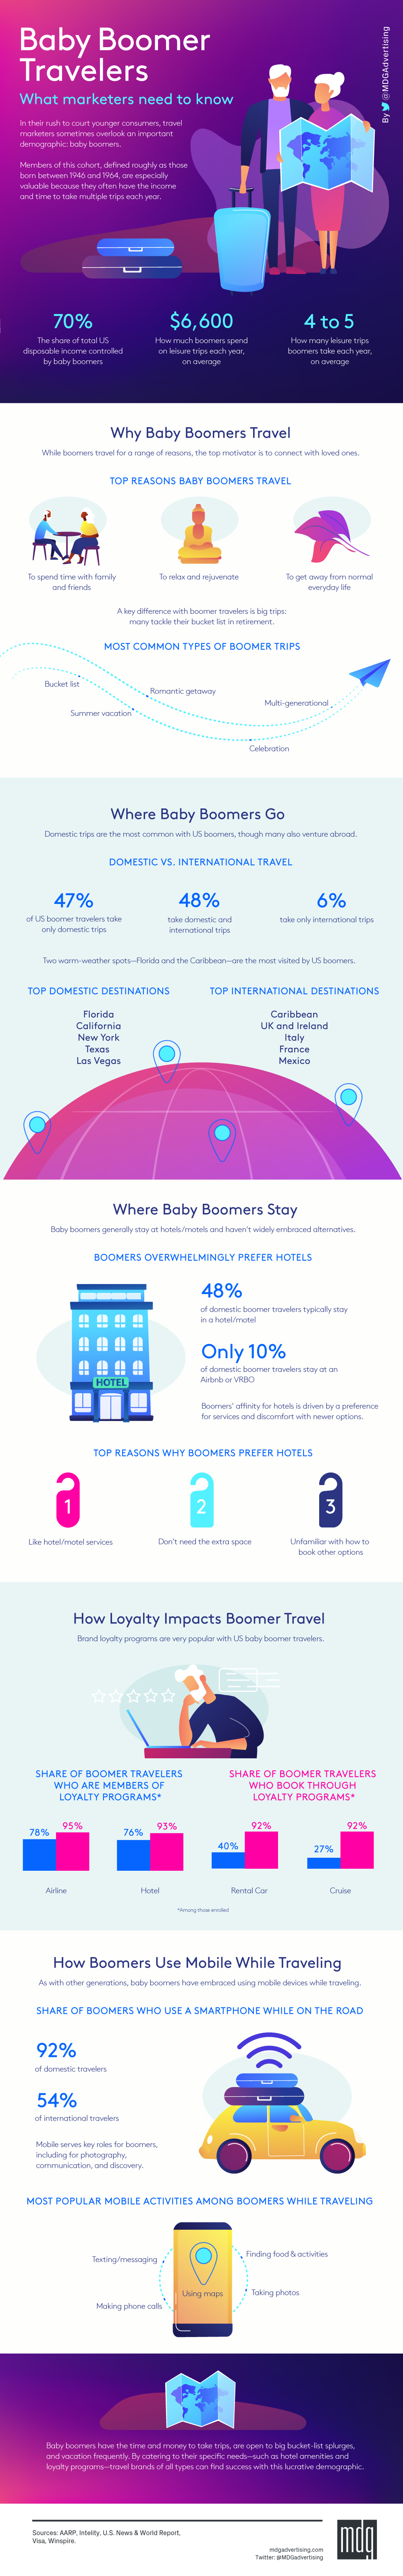 Infographic looks at travel trends among older audiences